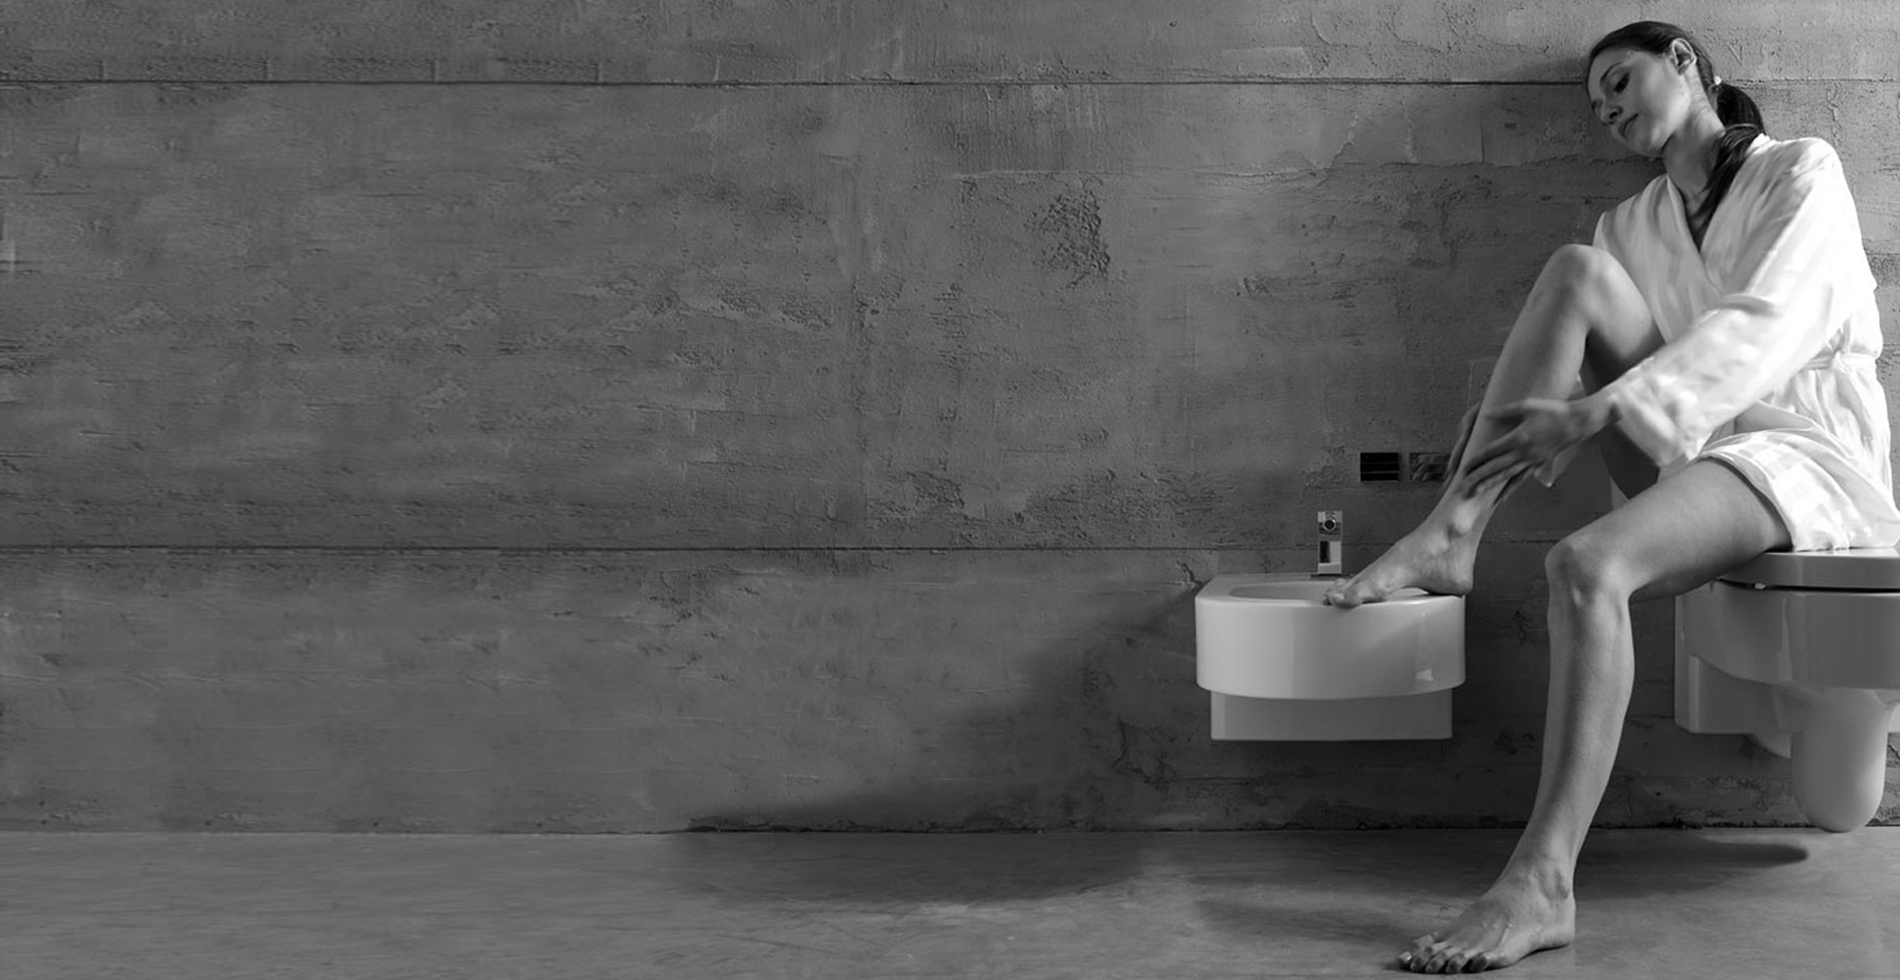 Bathroom deco Ceramic sanitary ware toilet | Collection OpenSpace | Design by Antonio Pascale for Ceramica Globo